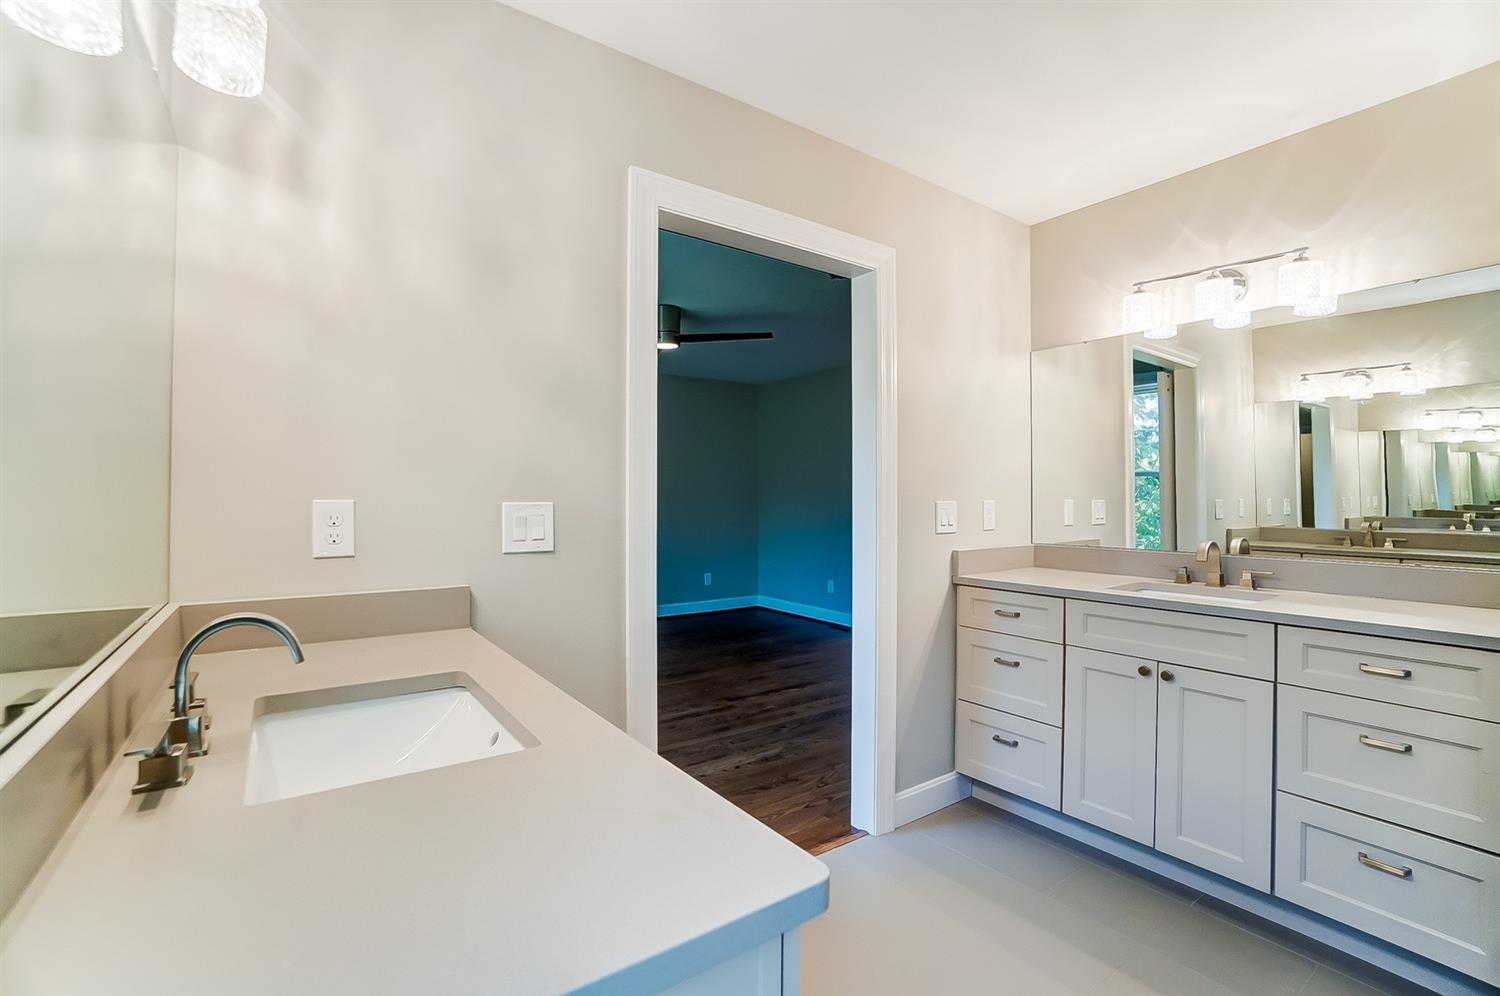 2nd floor, Owner's Bath, dual vanities, ample cabinets, bright crystal lighting, tile floor. Window lets in natural light. Light and airy definitely describes this space well.